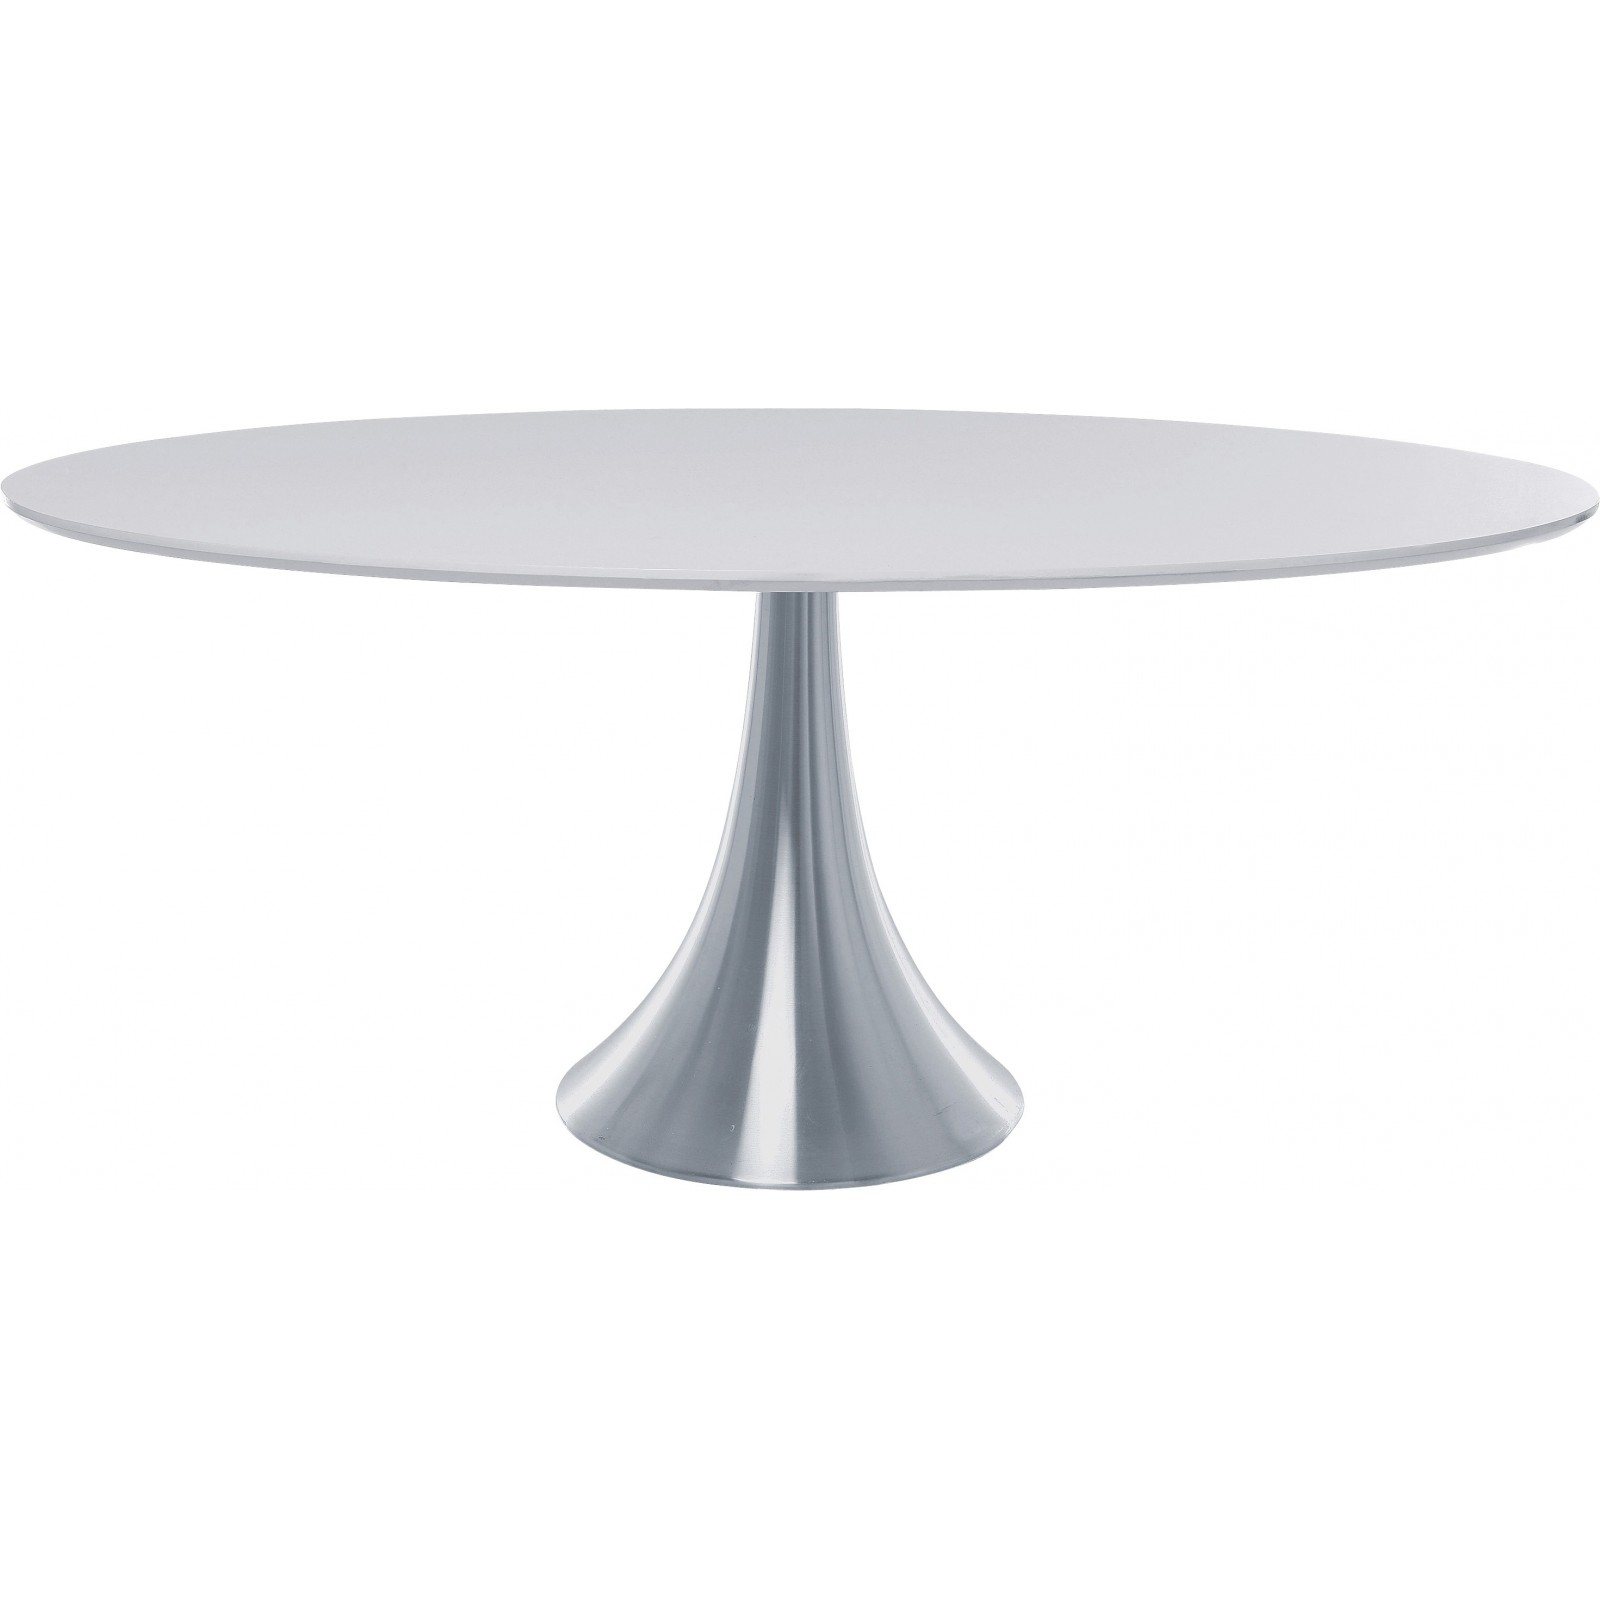 Table design blanche possibilita kare design - Grande table basse blanche ...